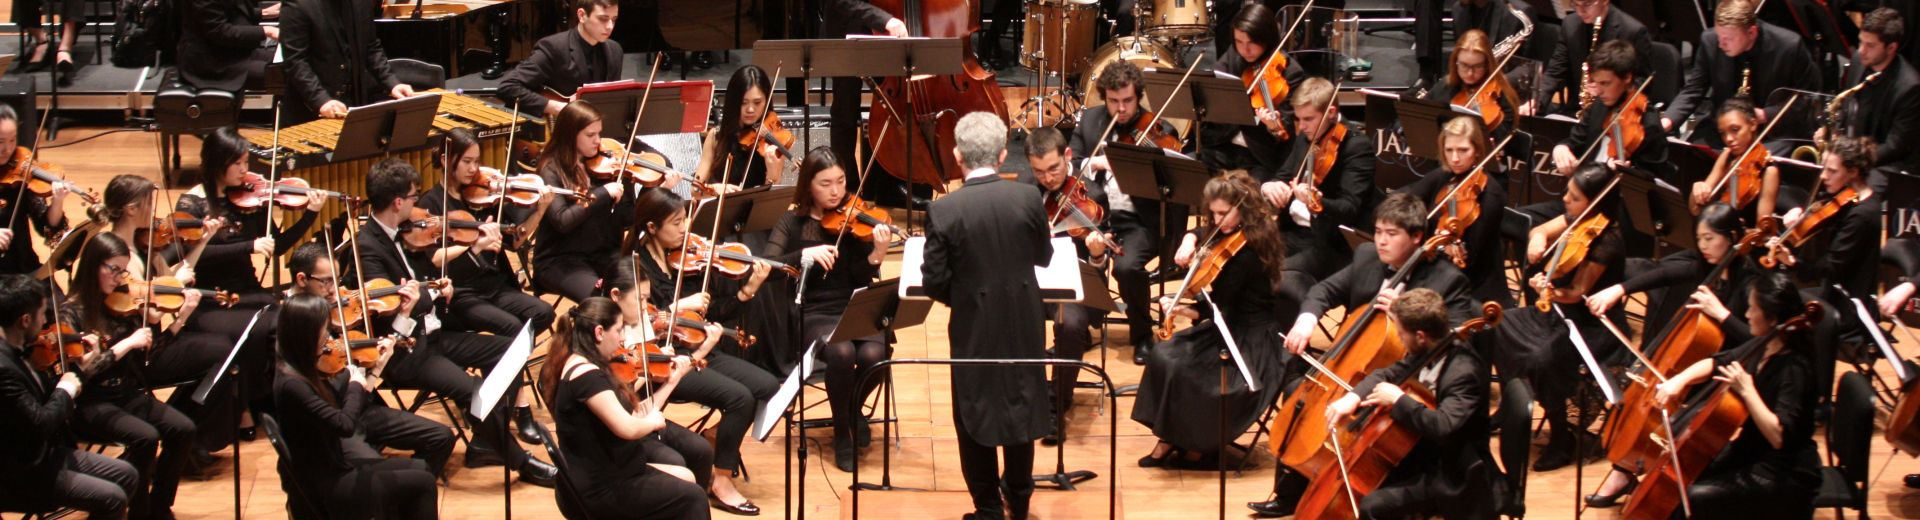 Large orchestra on stage in concert dress